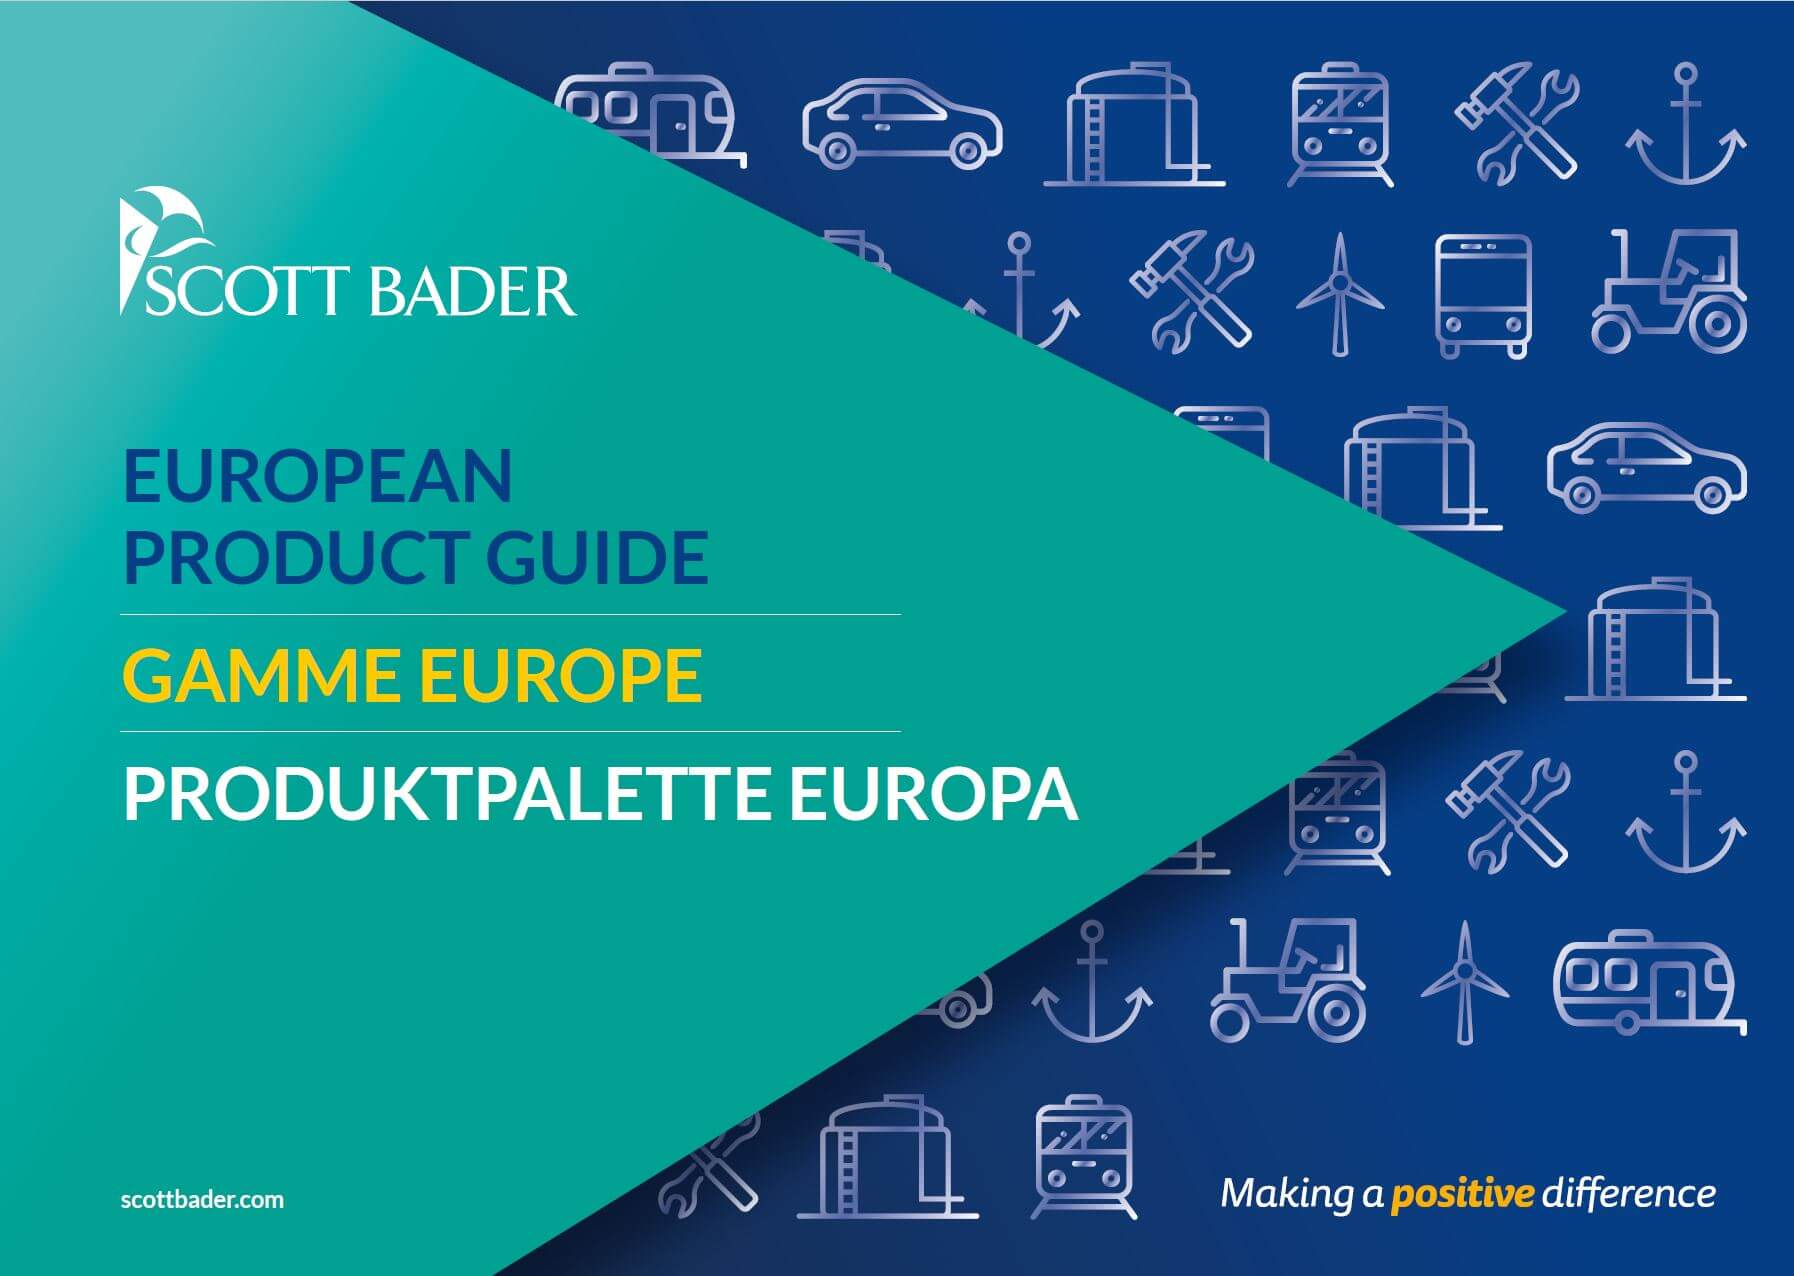 New European Product Guide now available